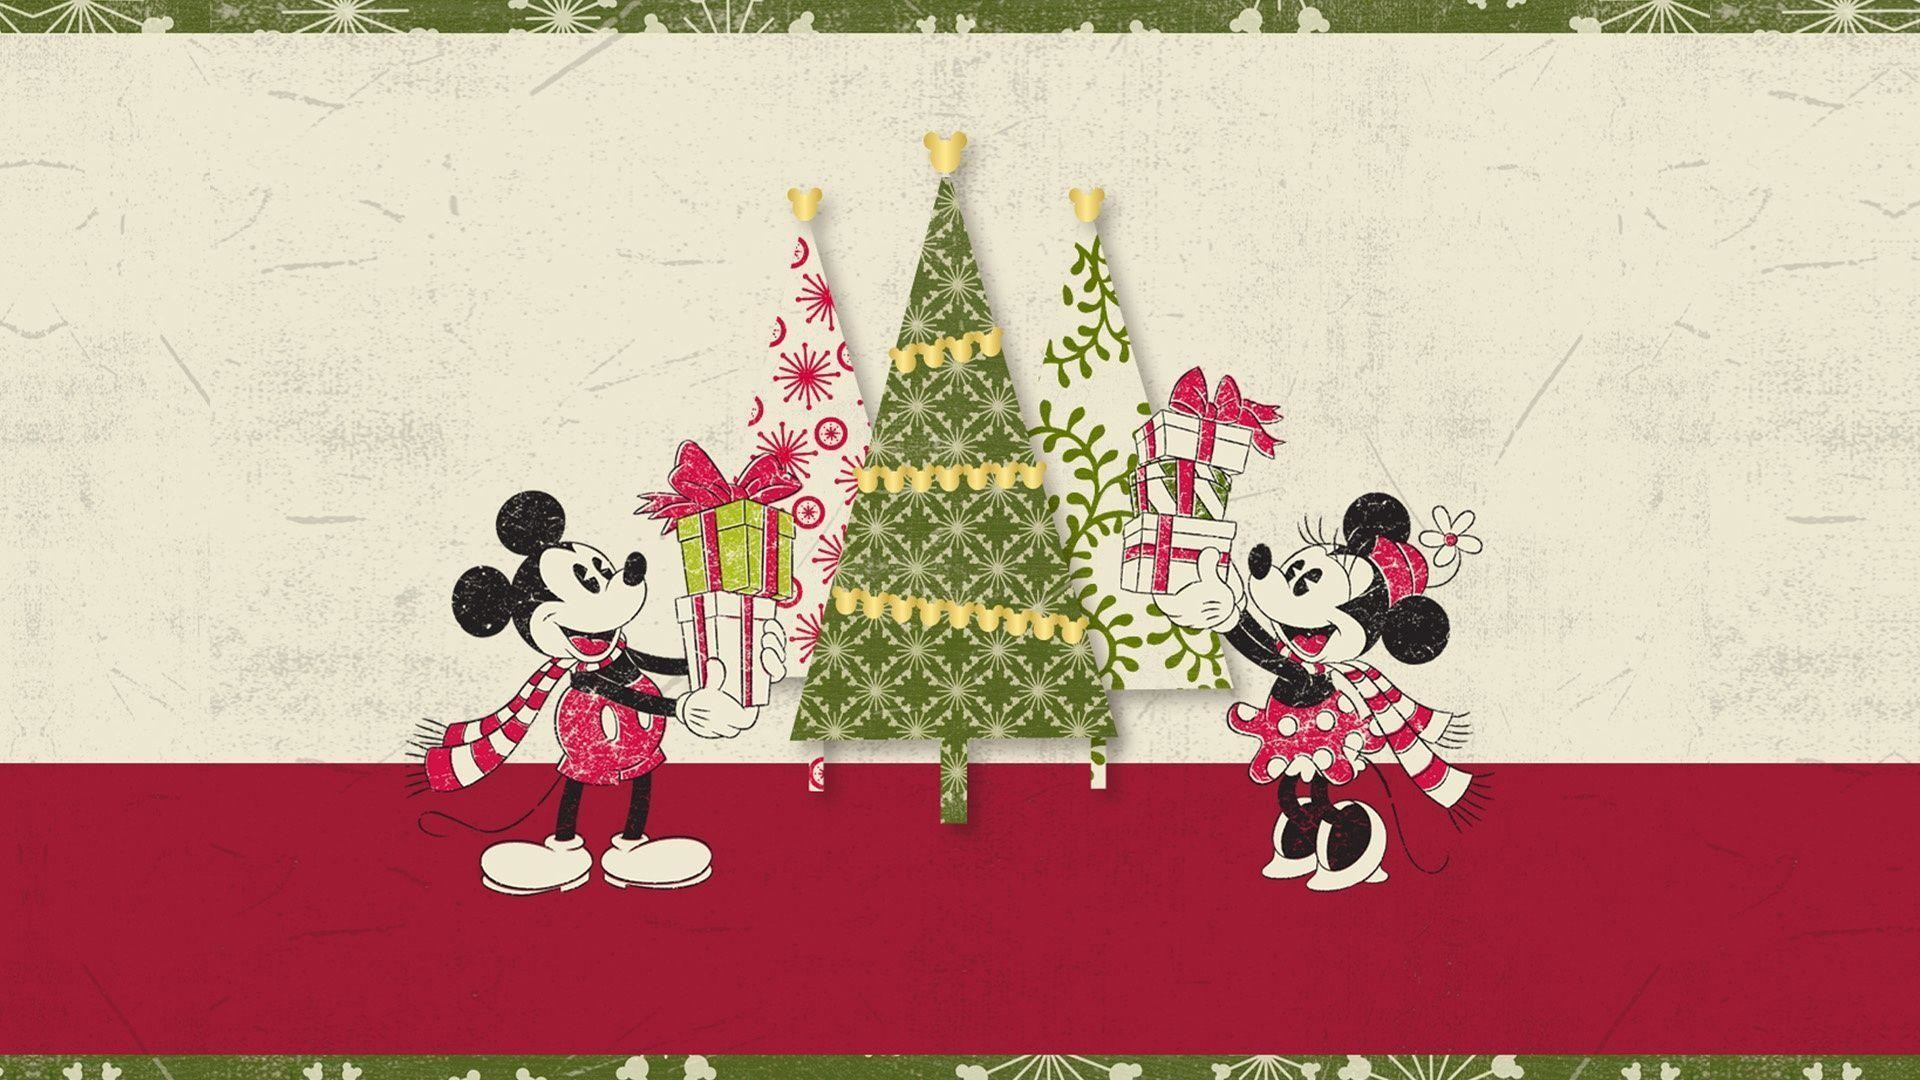 1920x1080 Disney Christmas Backgrounds - Wallpaper Cave